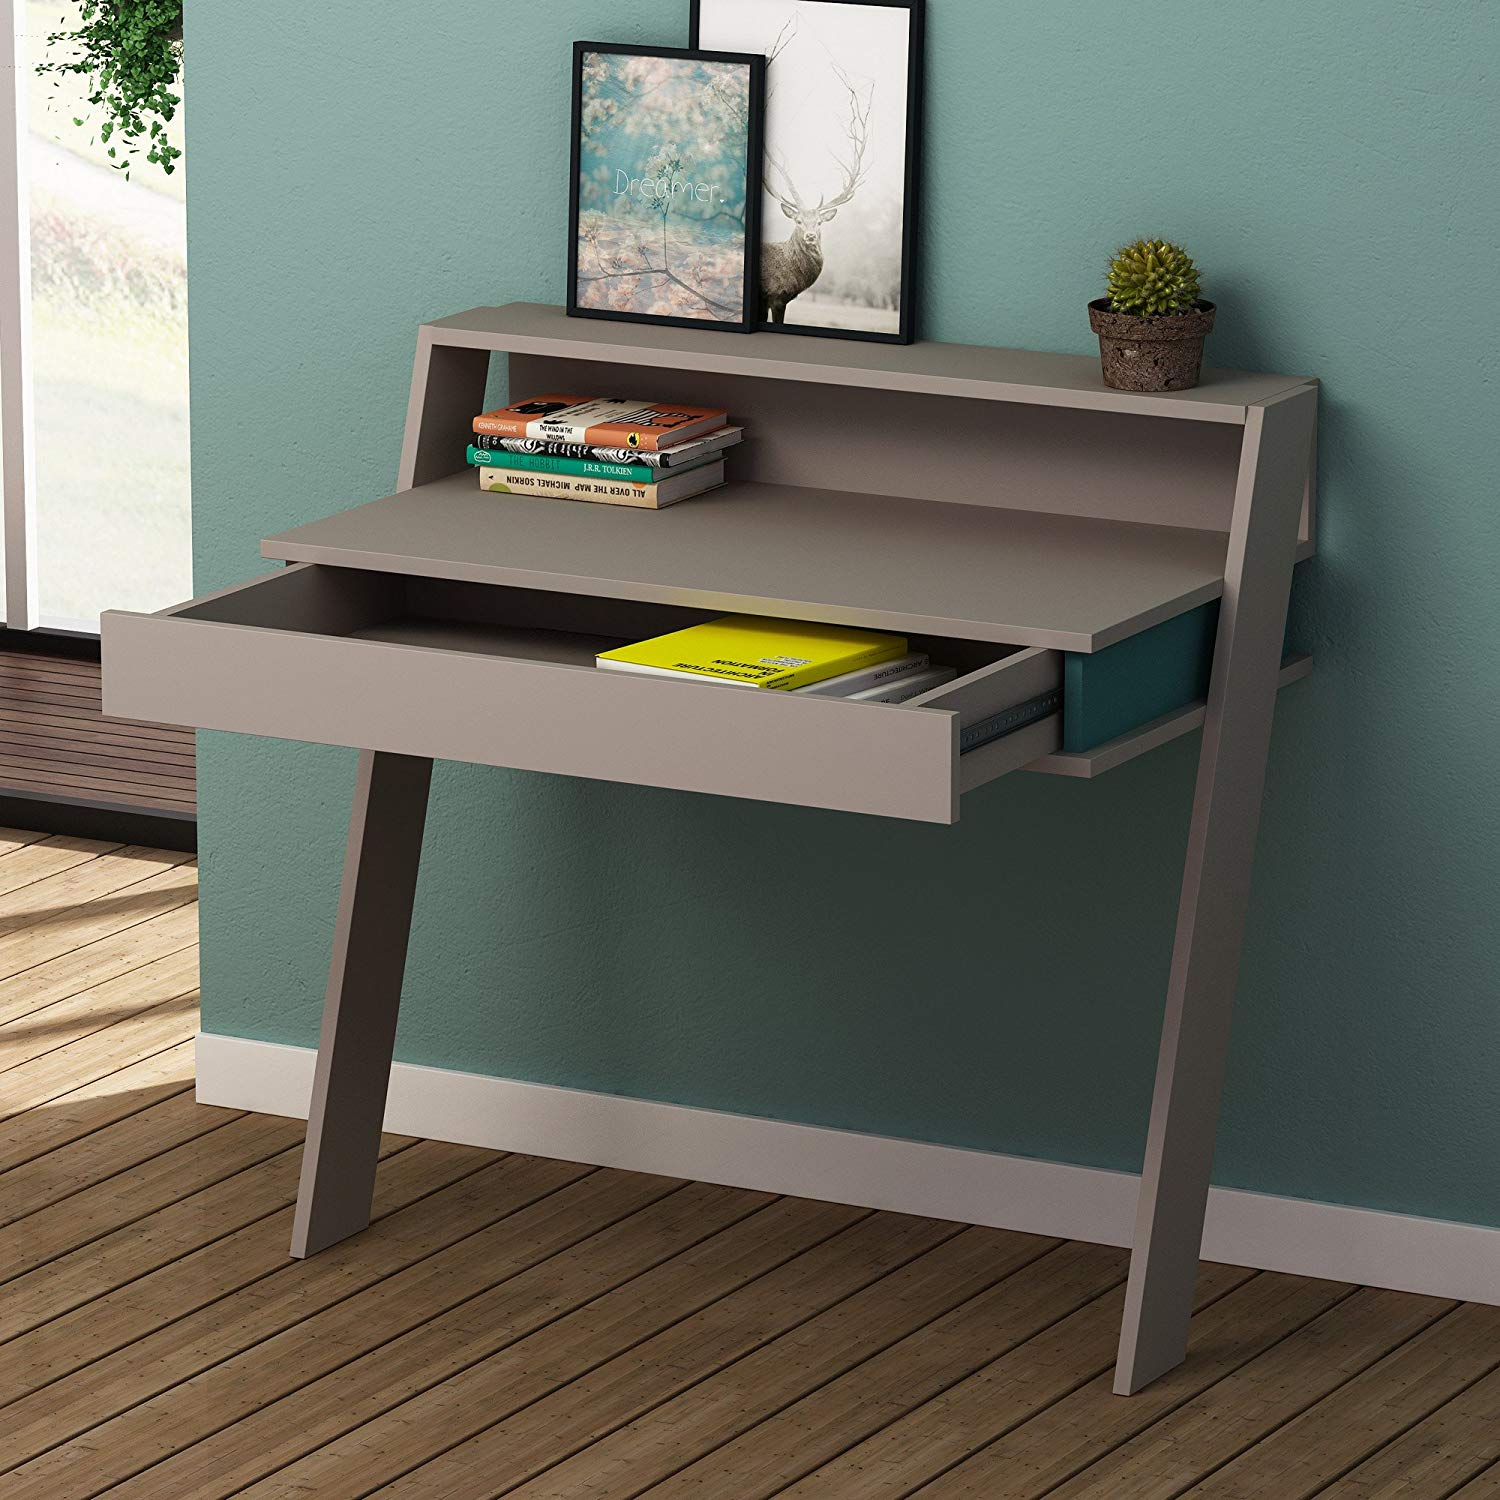 Writing Computer Desk Modern & Simple Gray Green Functional Modern Decorative Stable Study Desk Industrial Style Study & Laptop Table for Home, Office, Living Room, Study Room